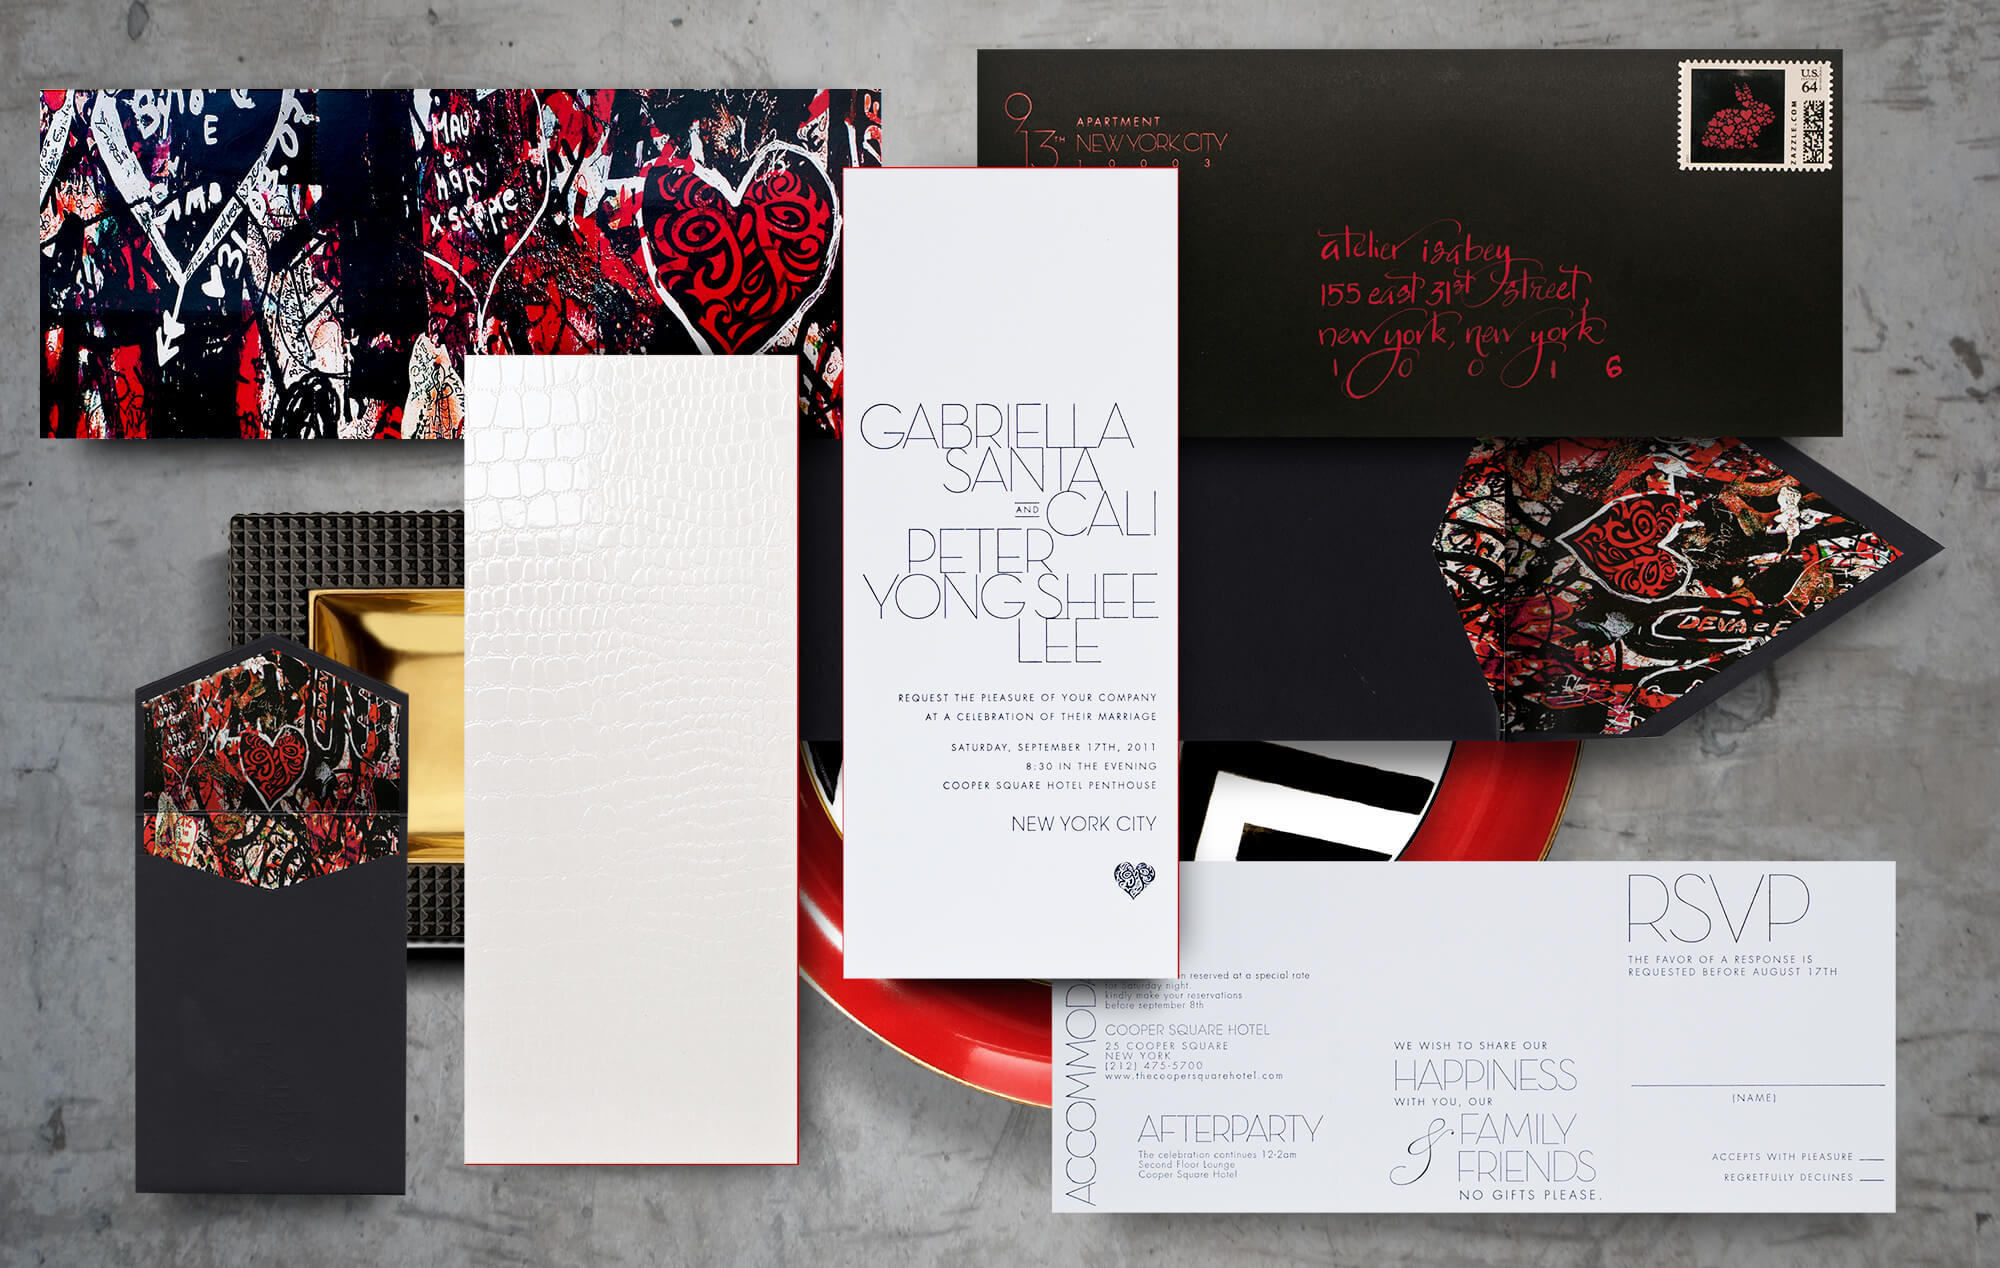 Modern graffiti wedding invitation